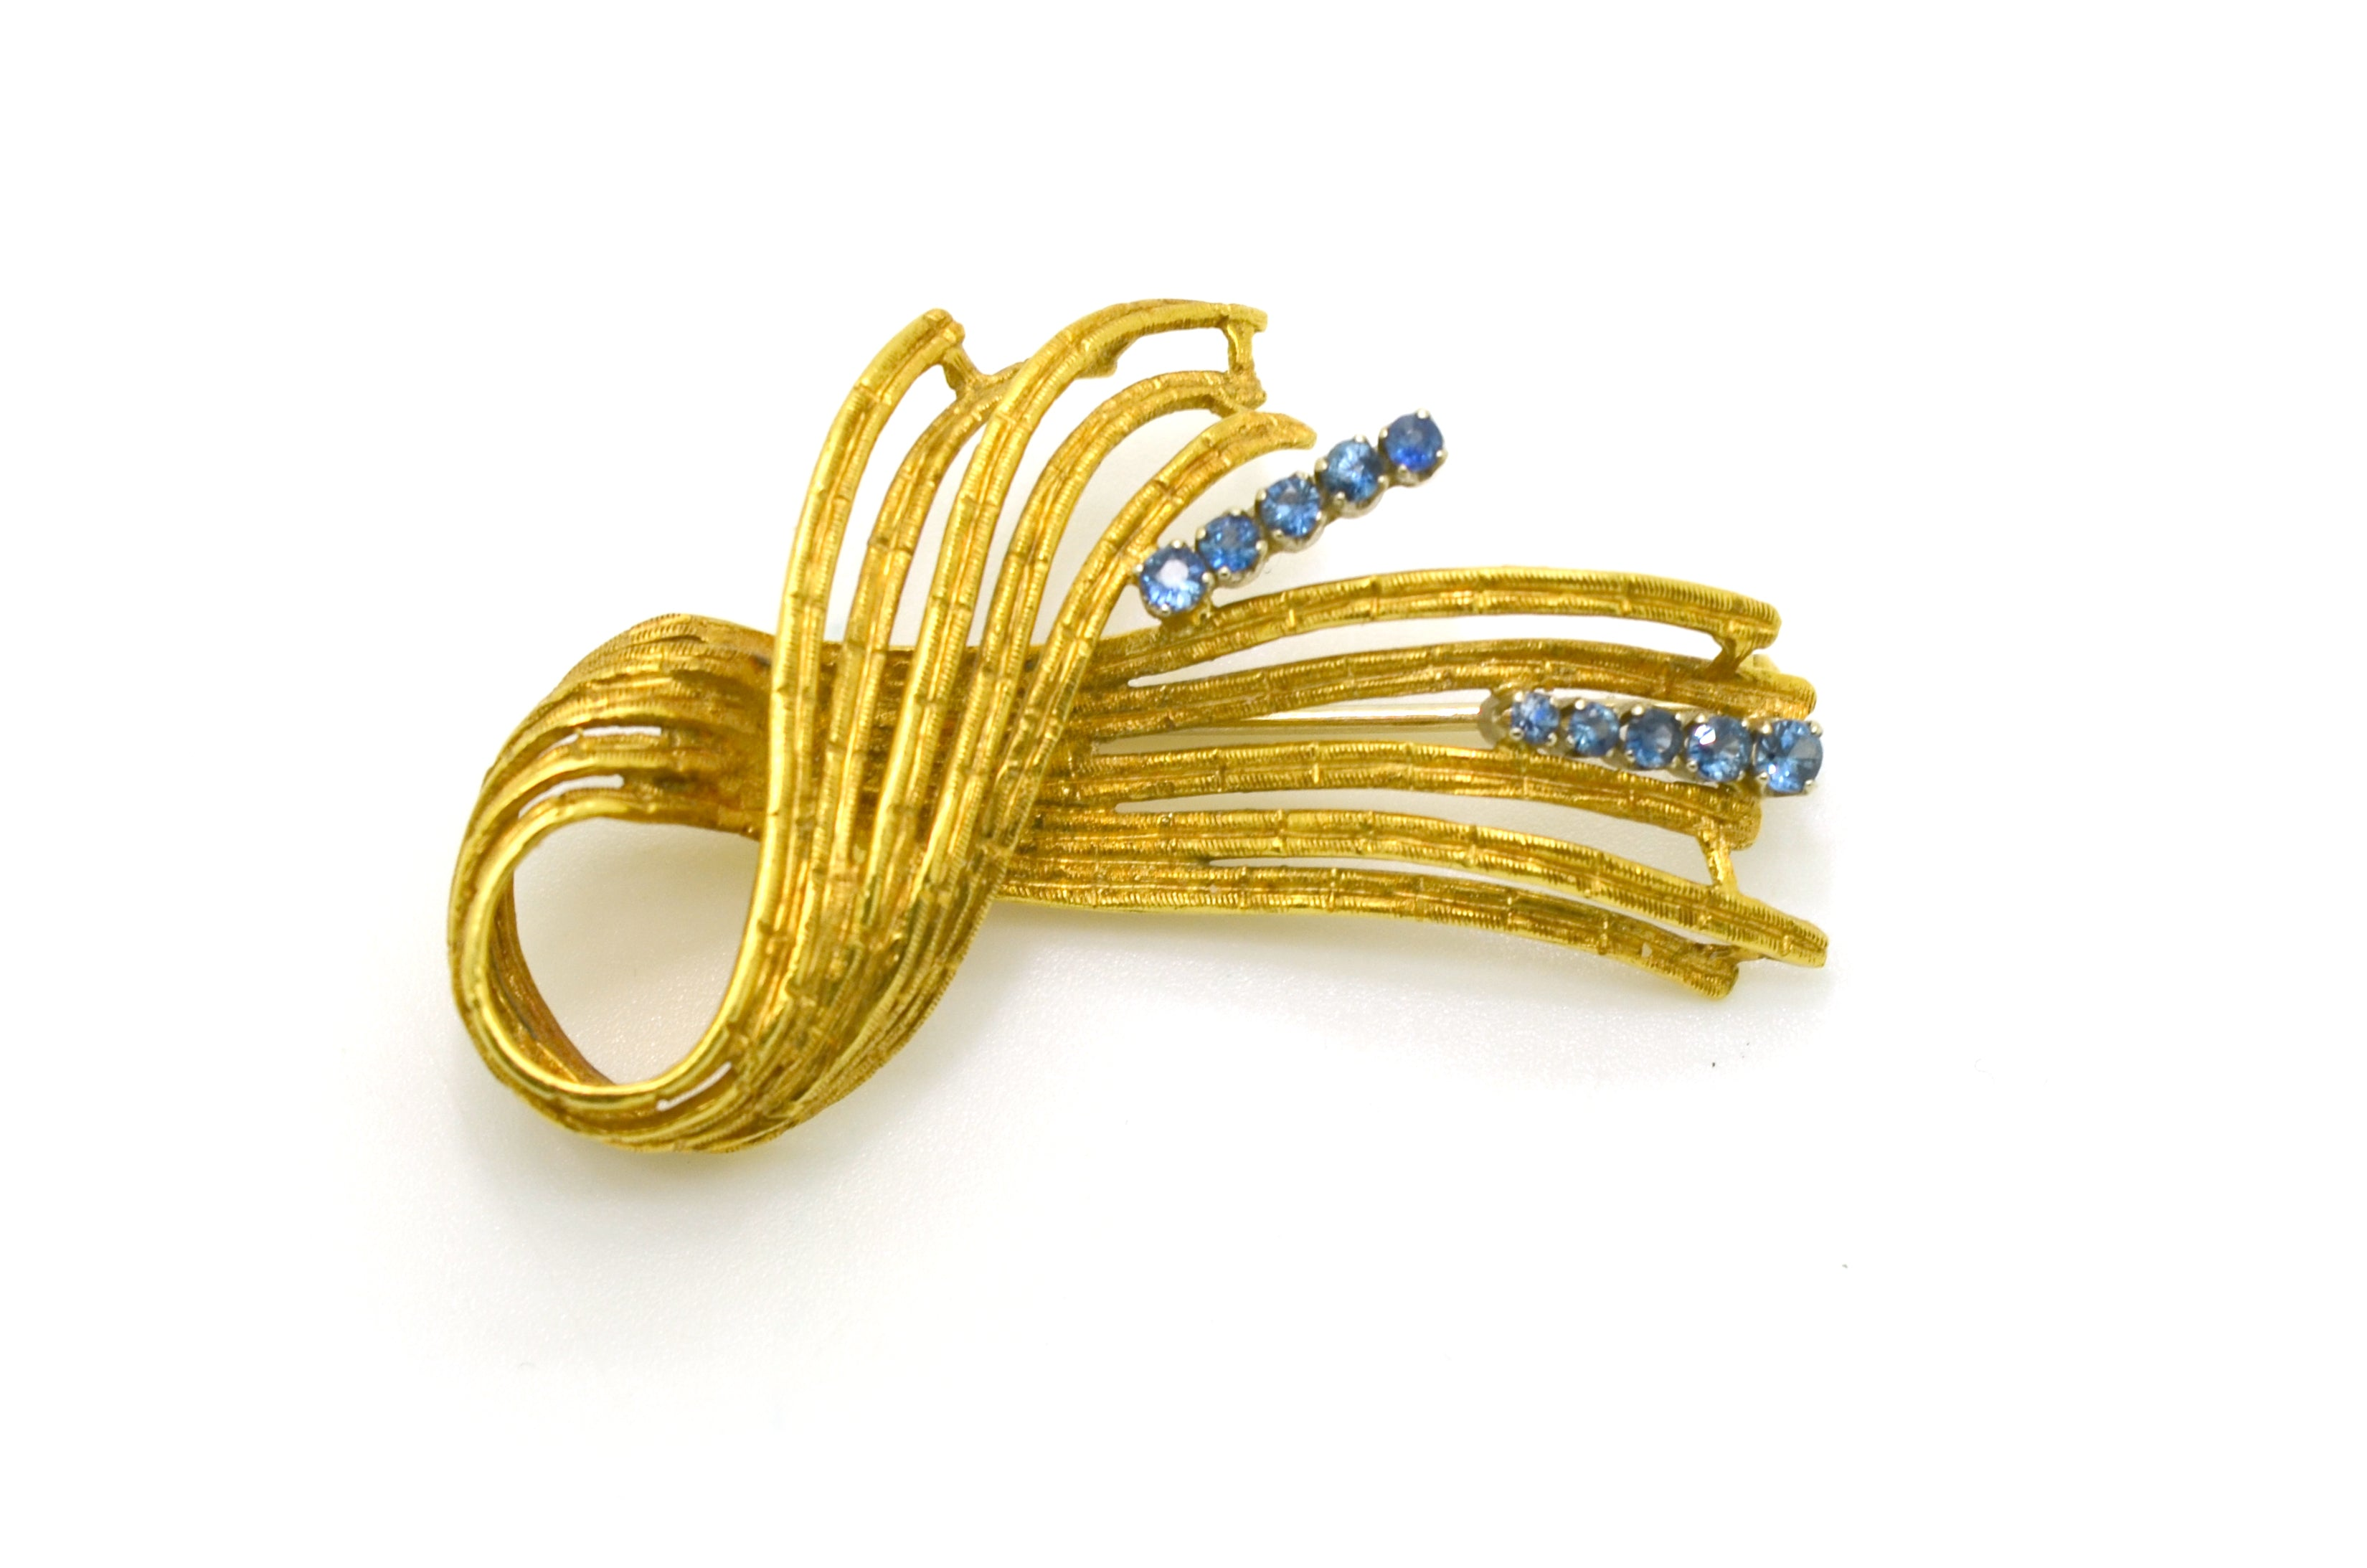 Vintage 18k Yellow Gold Textured Ribbon Blue Sapphire Brooch - .35 ct. total